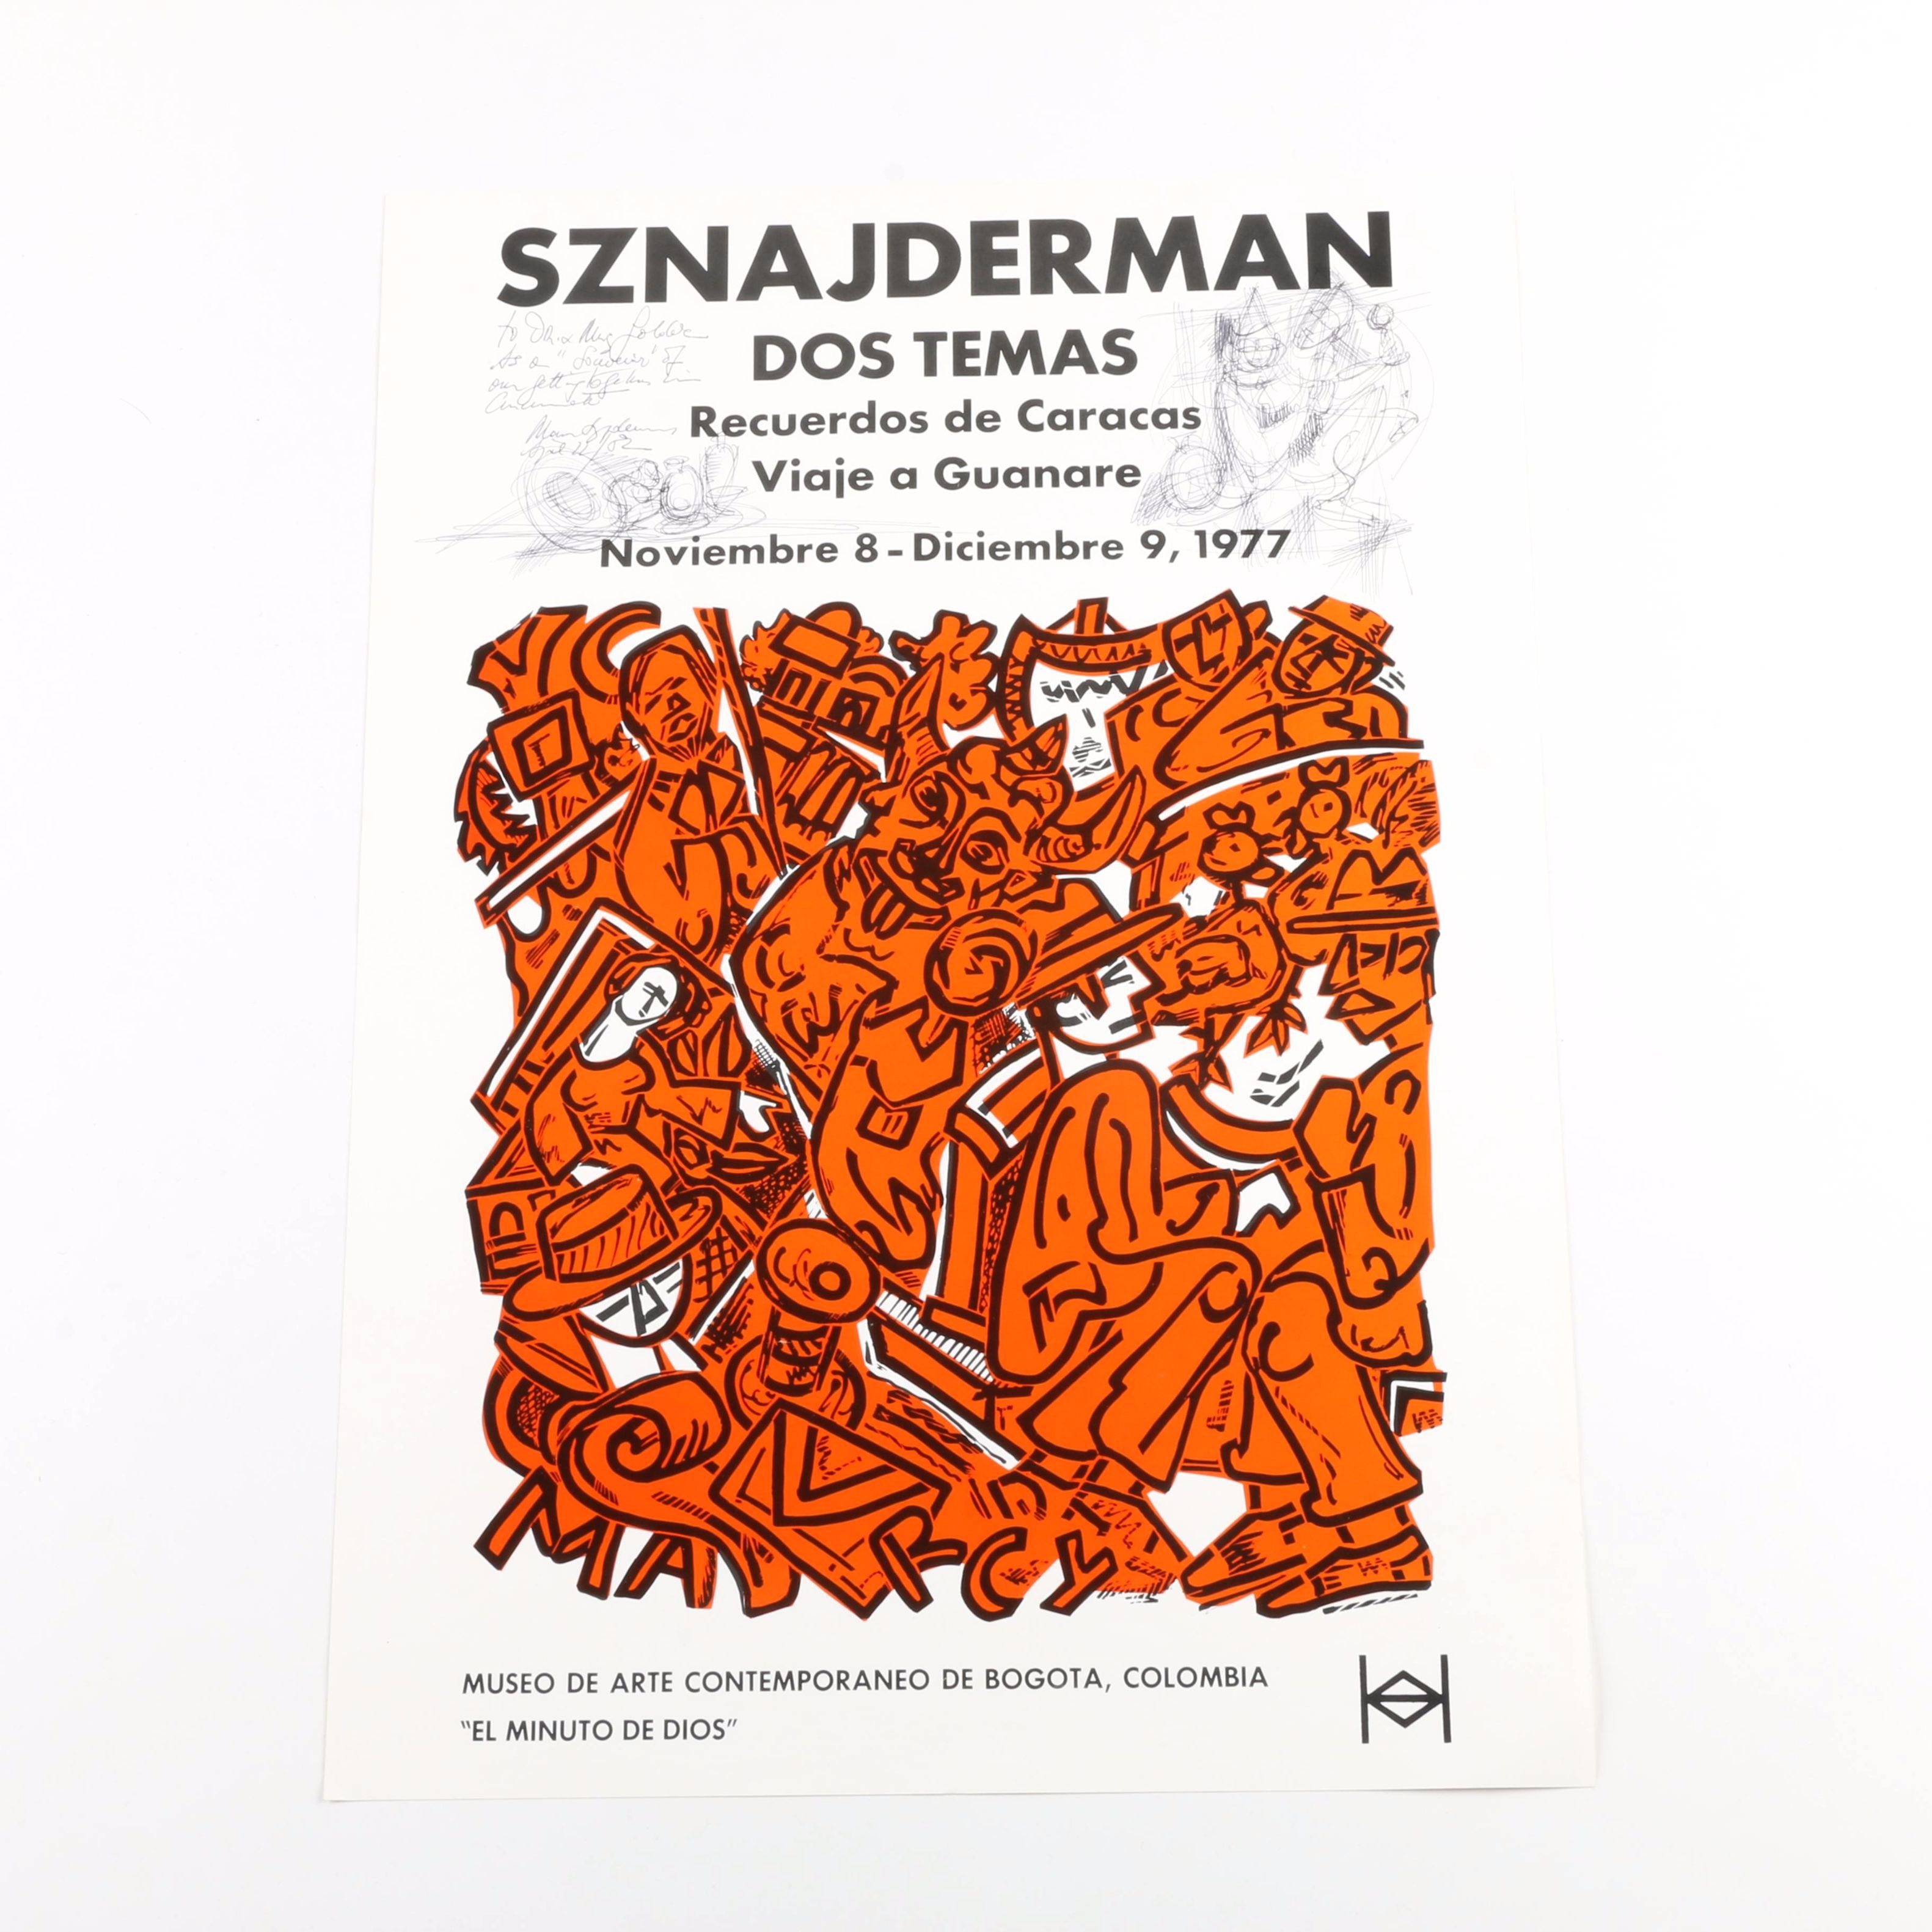 Marius Sznajderman Serigraph Exhibition Poster Signed and Personalized with Drawing